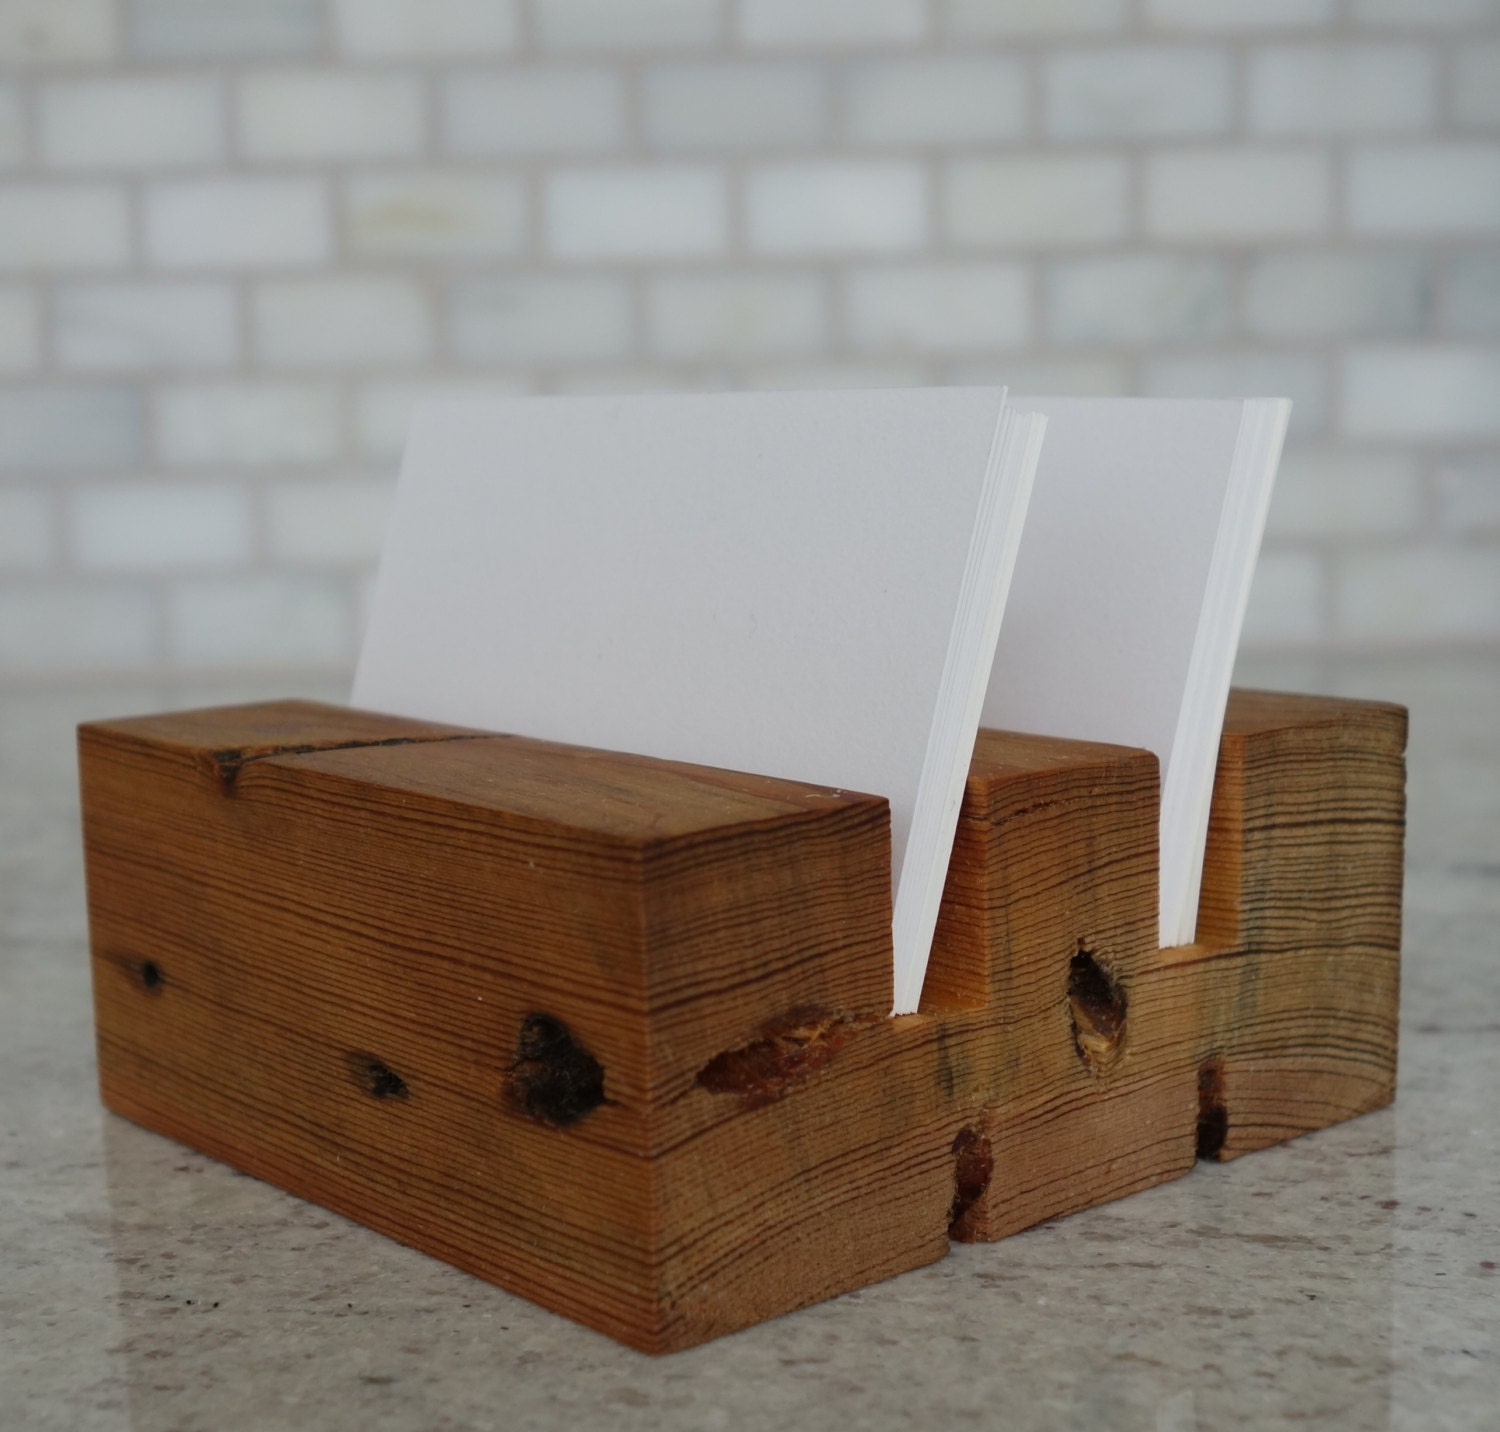 Wood Business Card Holder Desktop business card holder Desk